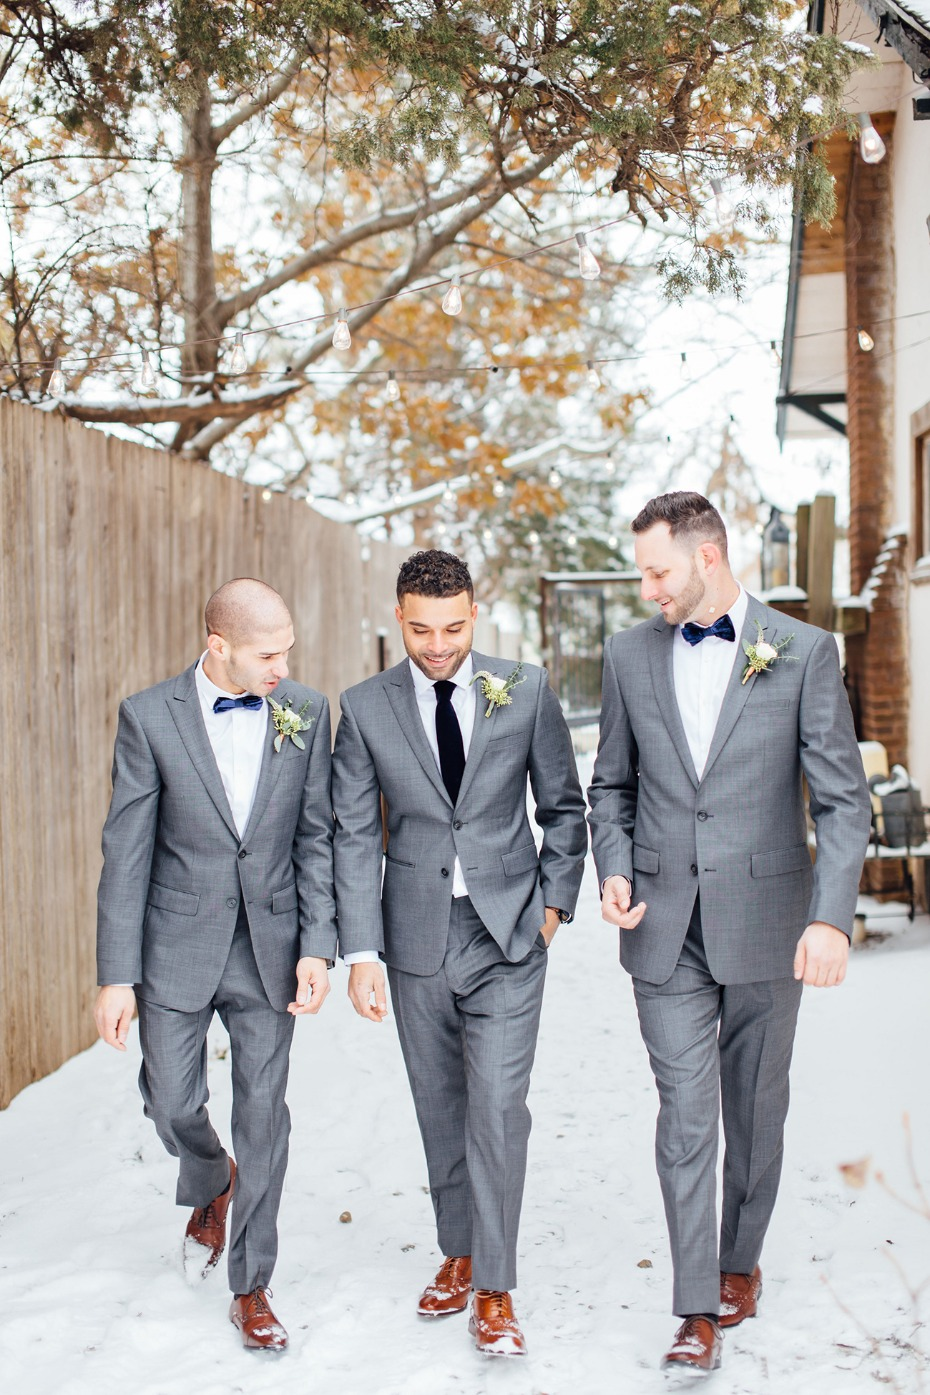 Grey suits and black ties